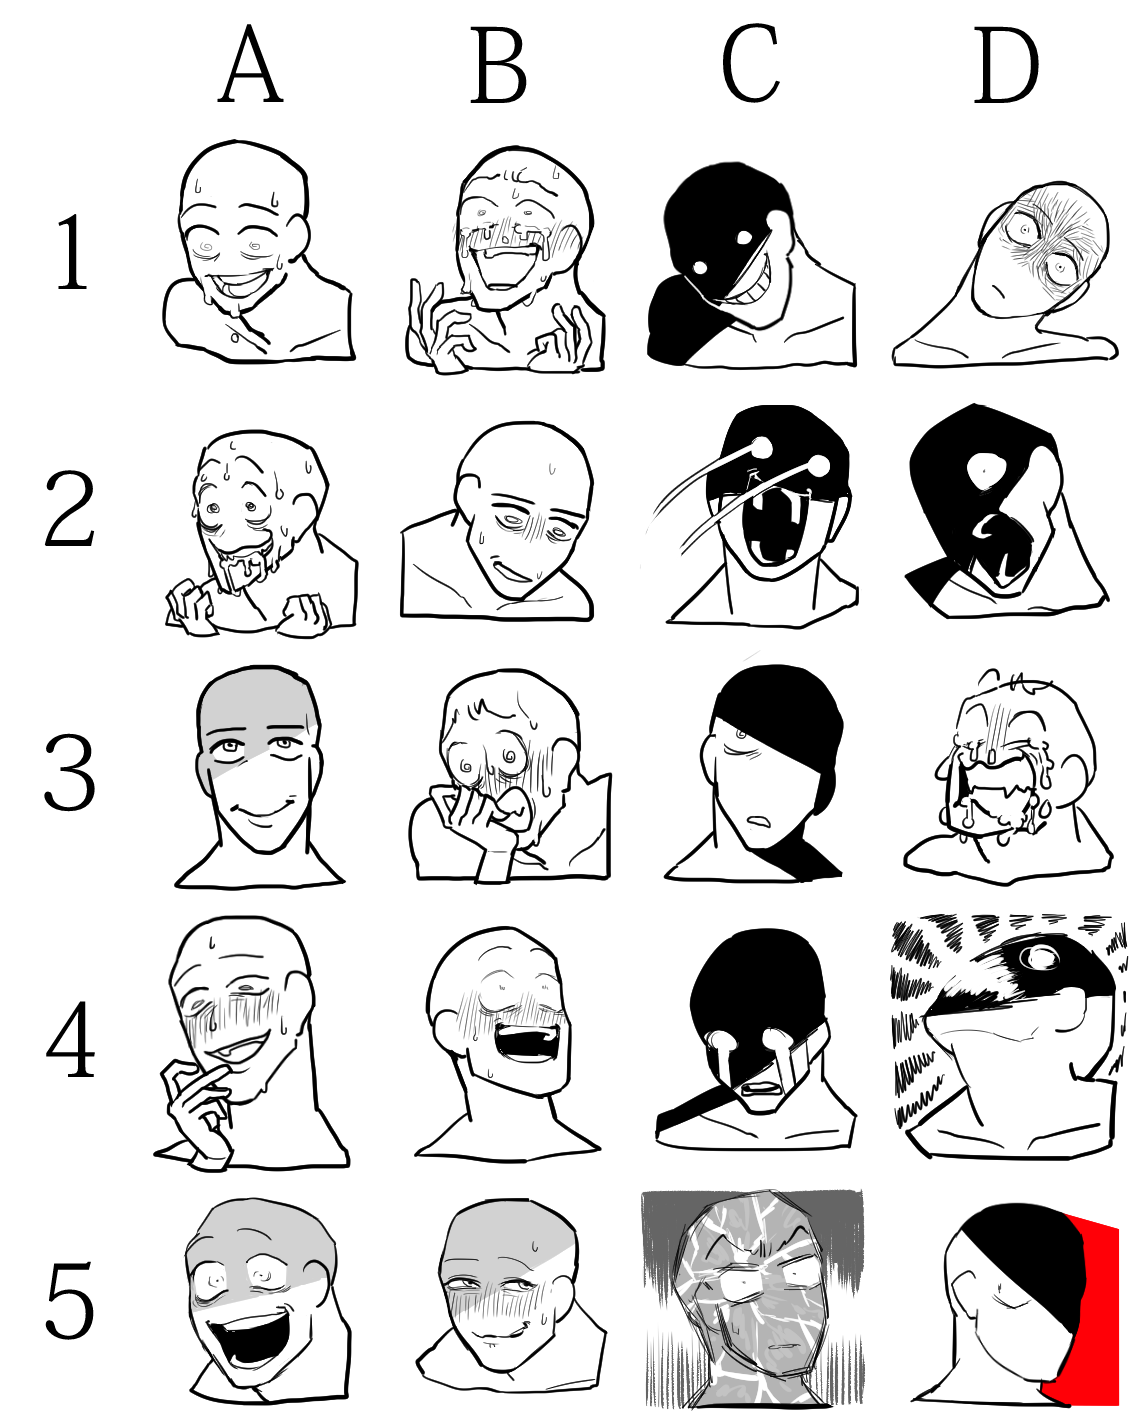 Funny Meme Faces Human : Creepy mad face memes by deeppink man on tumblr